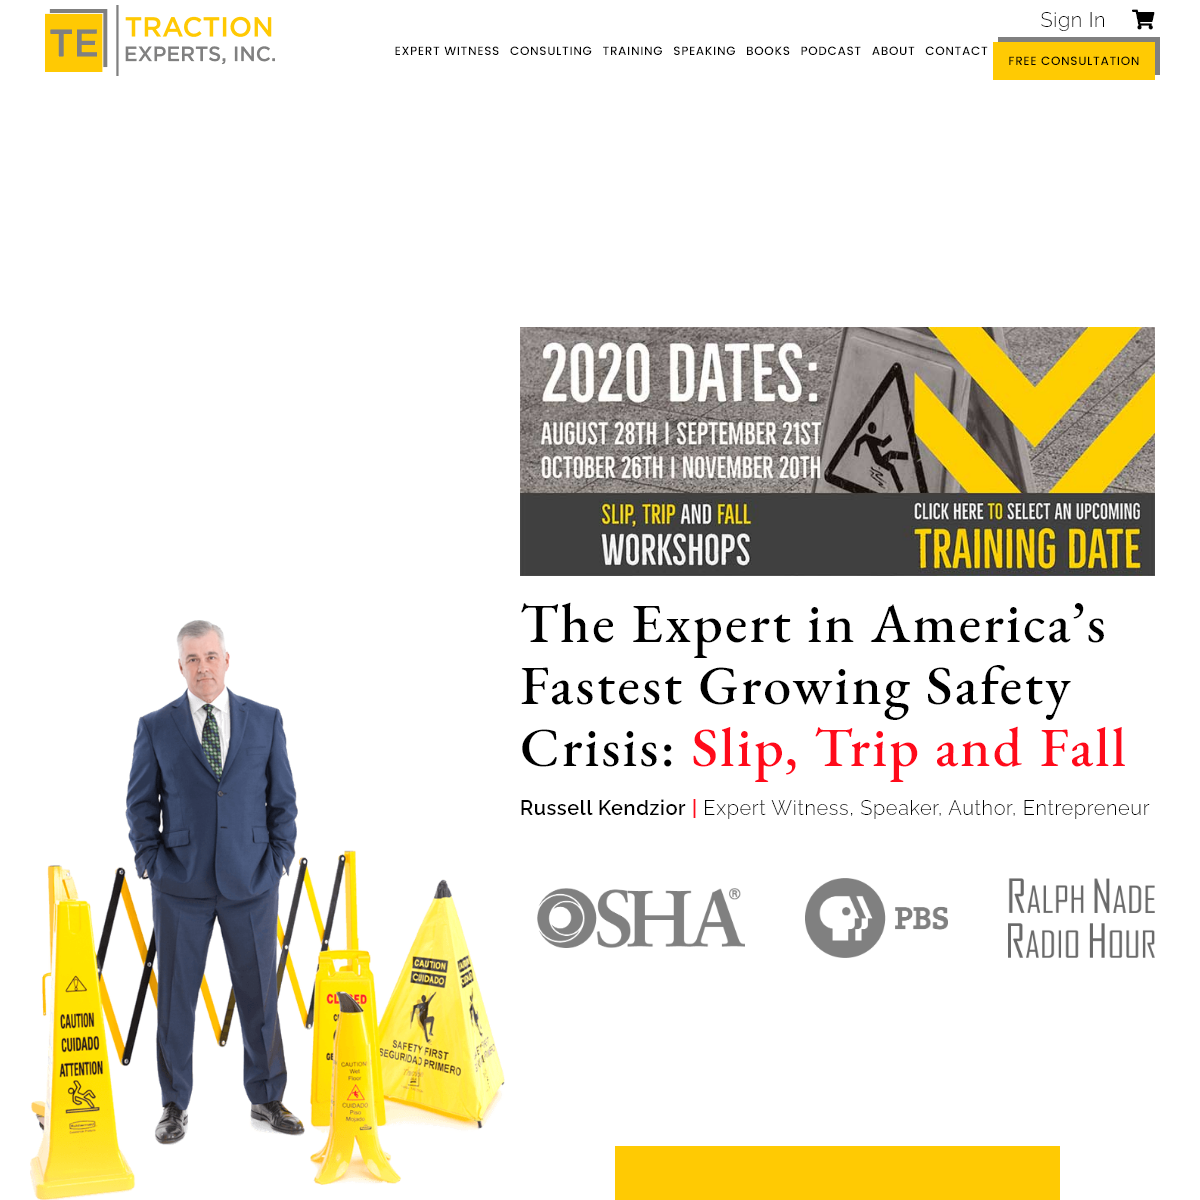 Traction Experts, Inc.- Slip, Trip, & Fall Prevention Expert Witness